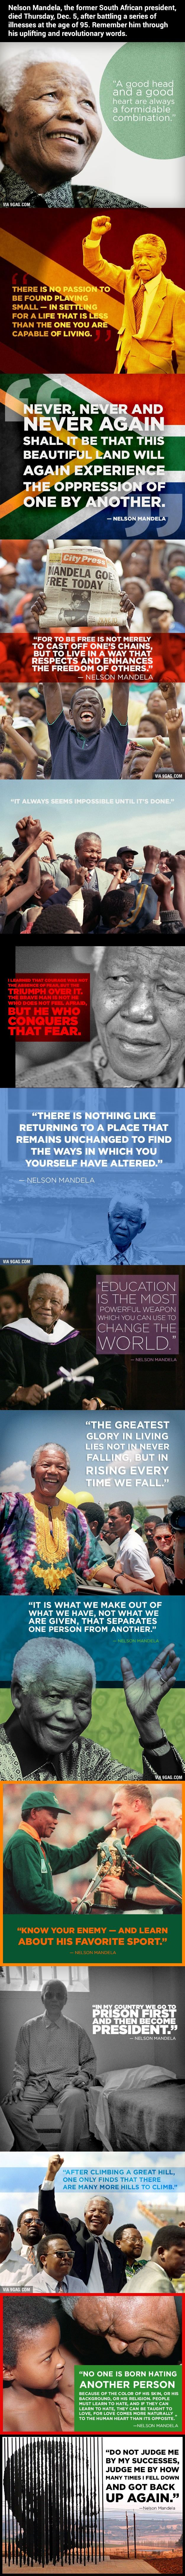 15 Most Inspiring Quotes By Nelson Mandela #nelsonmandela #quotes #inspiring